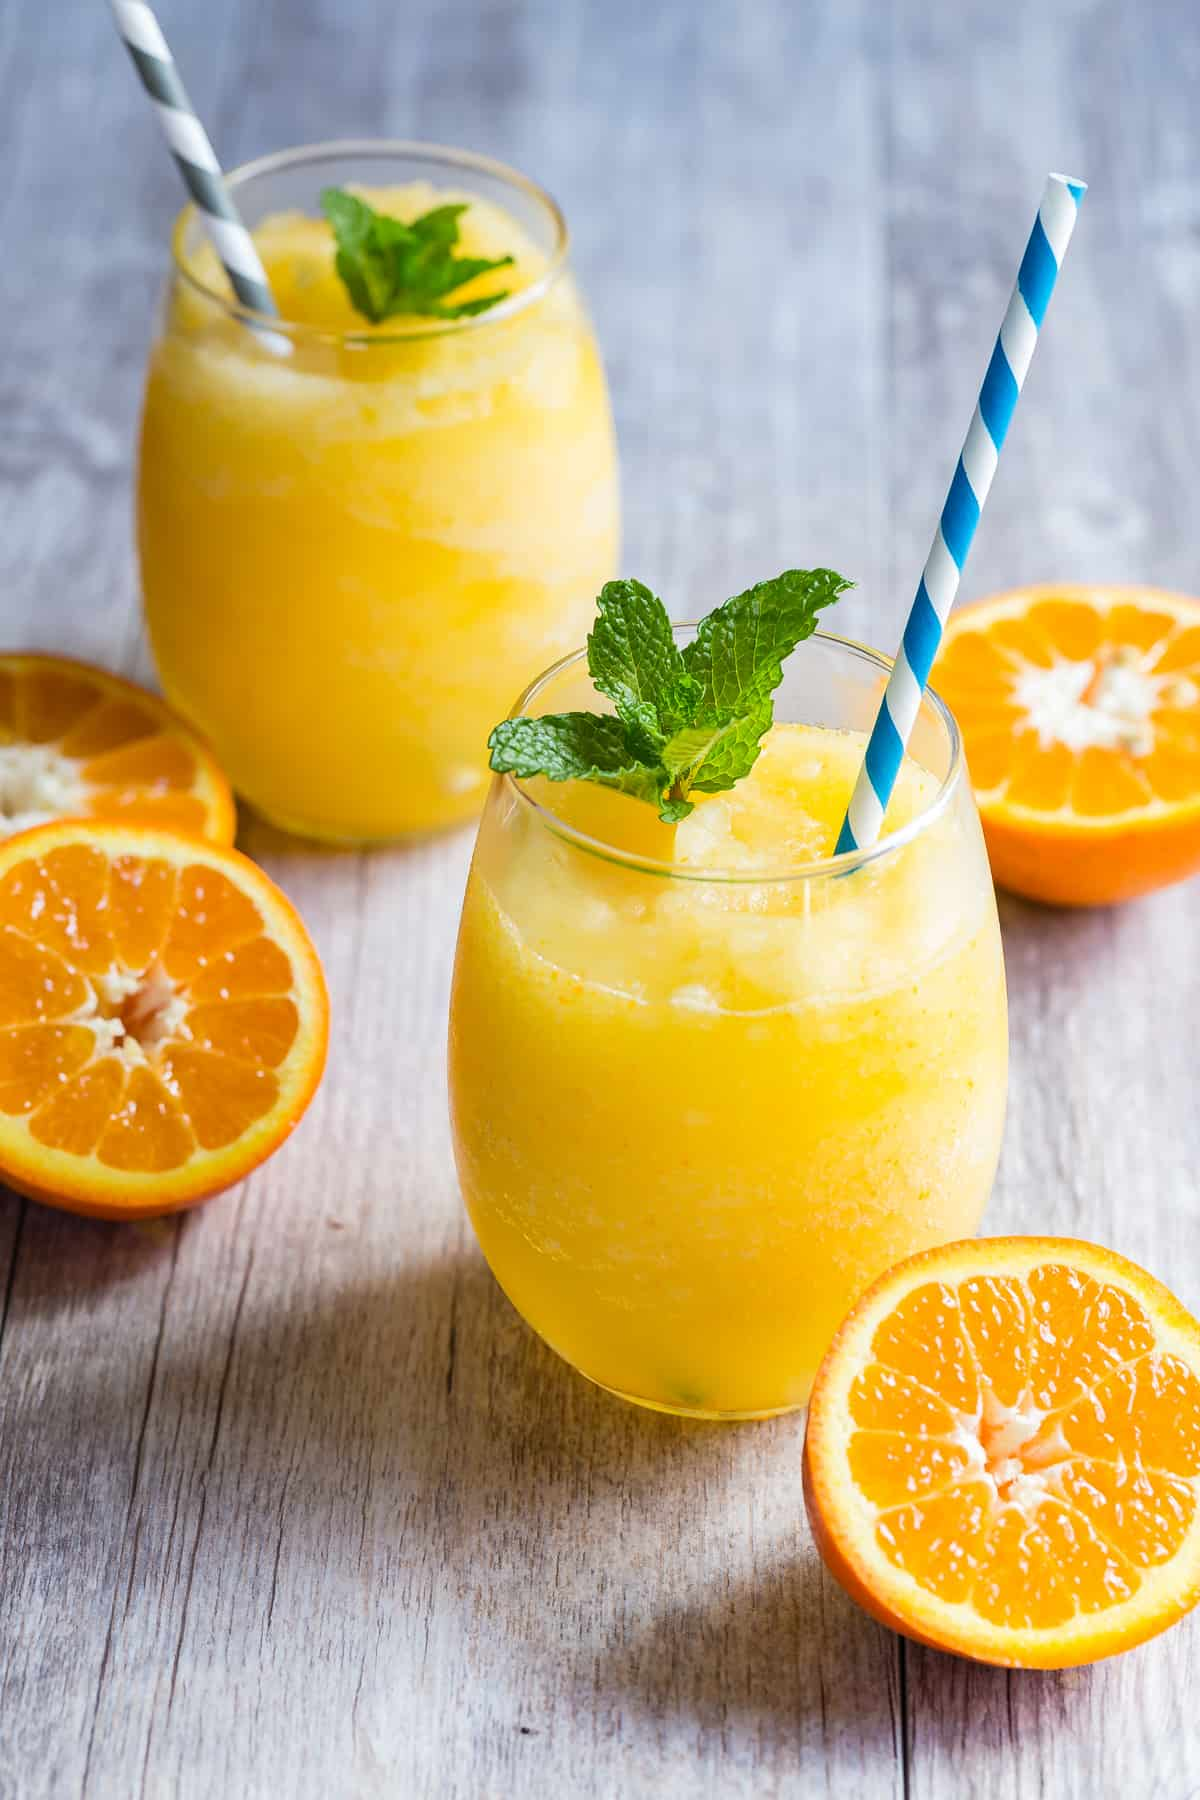 Frozen Prosecco mixed with freshly squeezed orange juice and blended for a slushy like consistency. This is one easy drink that you have to make this summer!